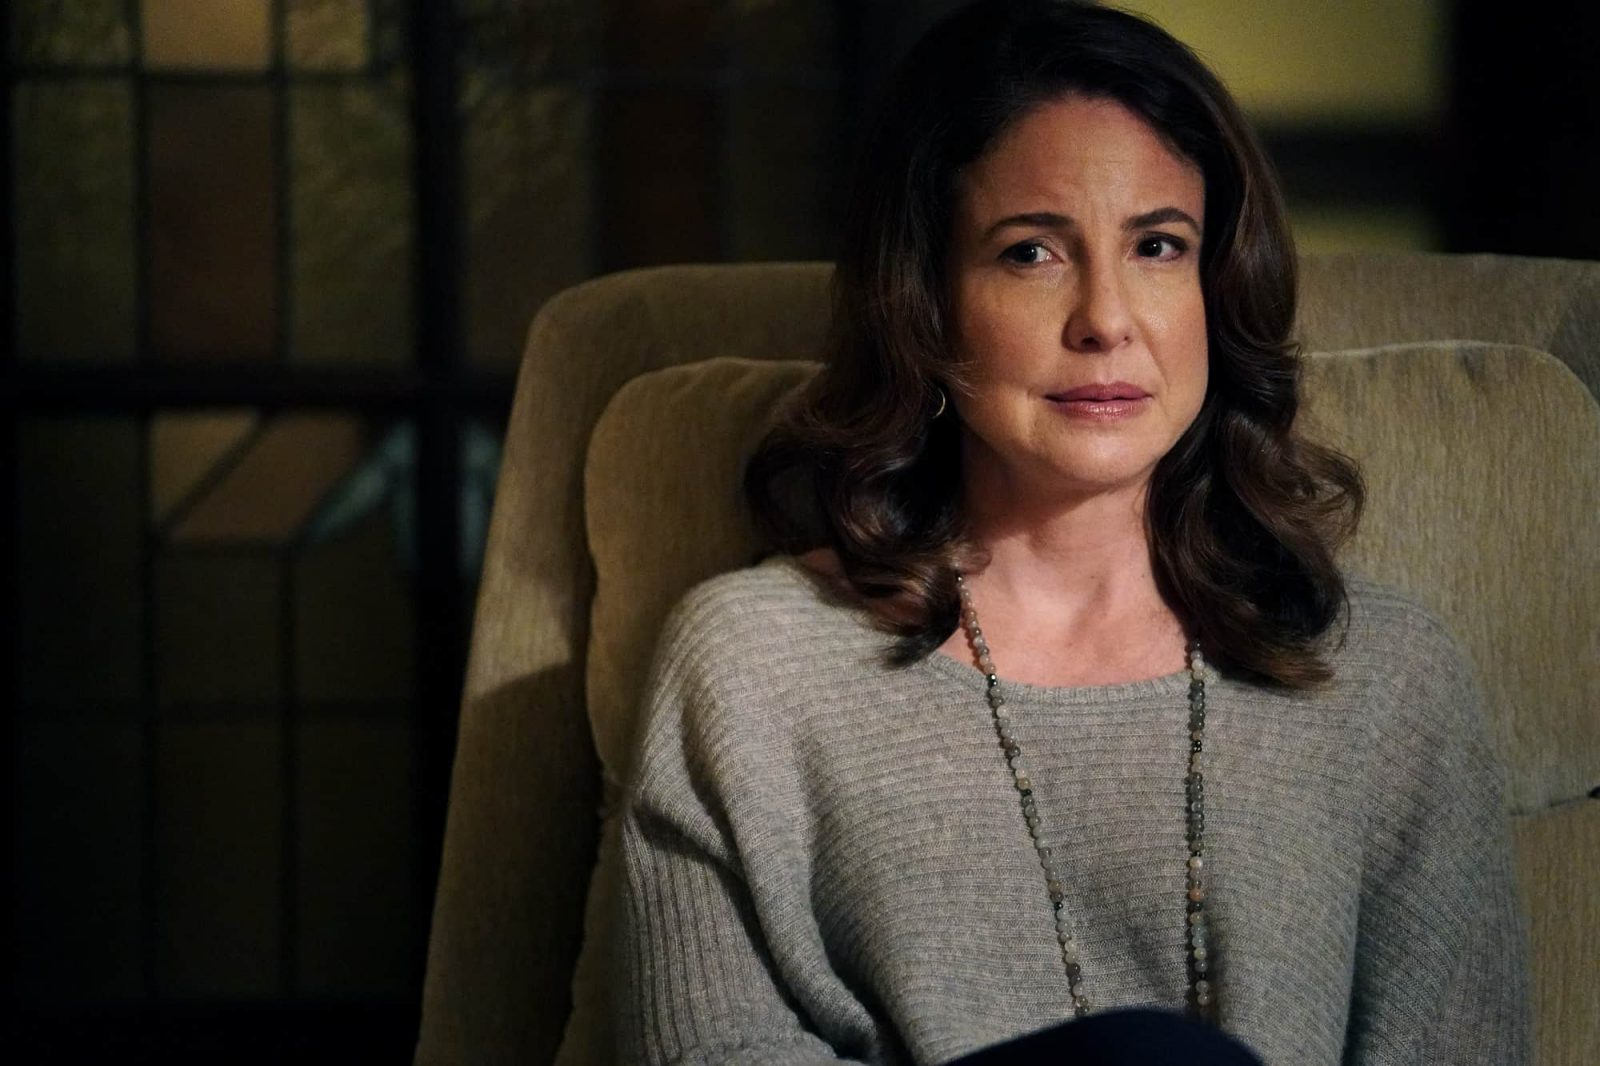 La Dra. Reisman (Robin Weigert) en el episodio 2x03 de Big Little Lies